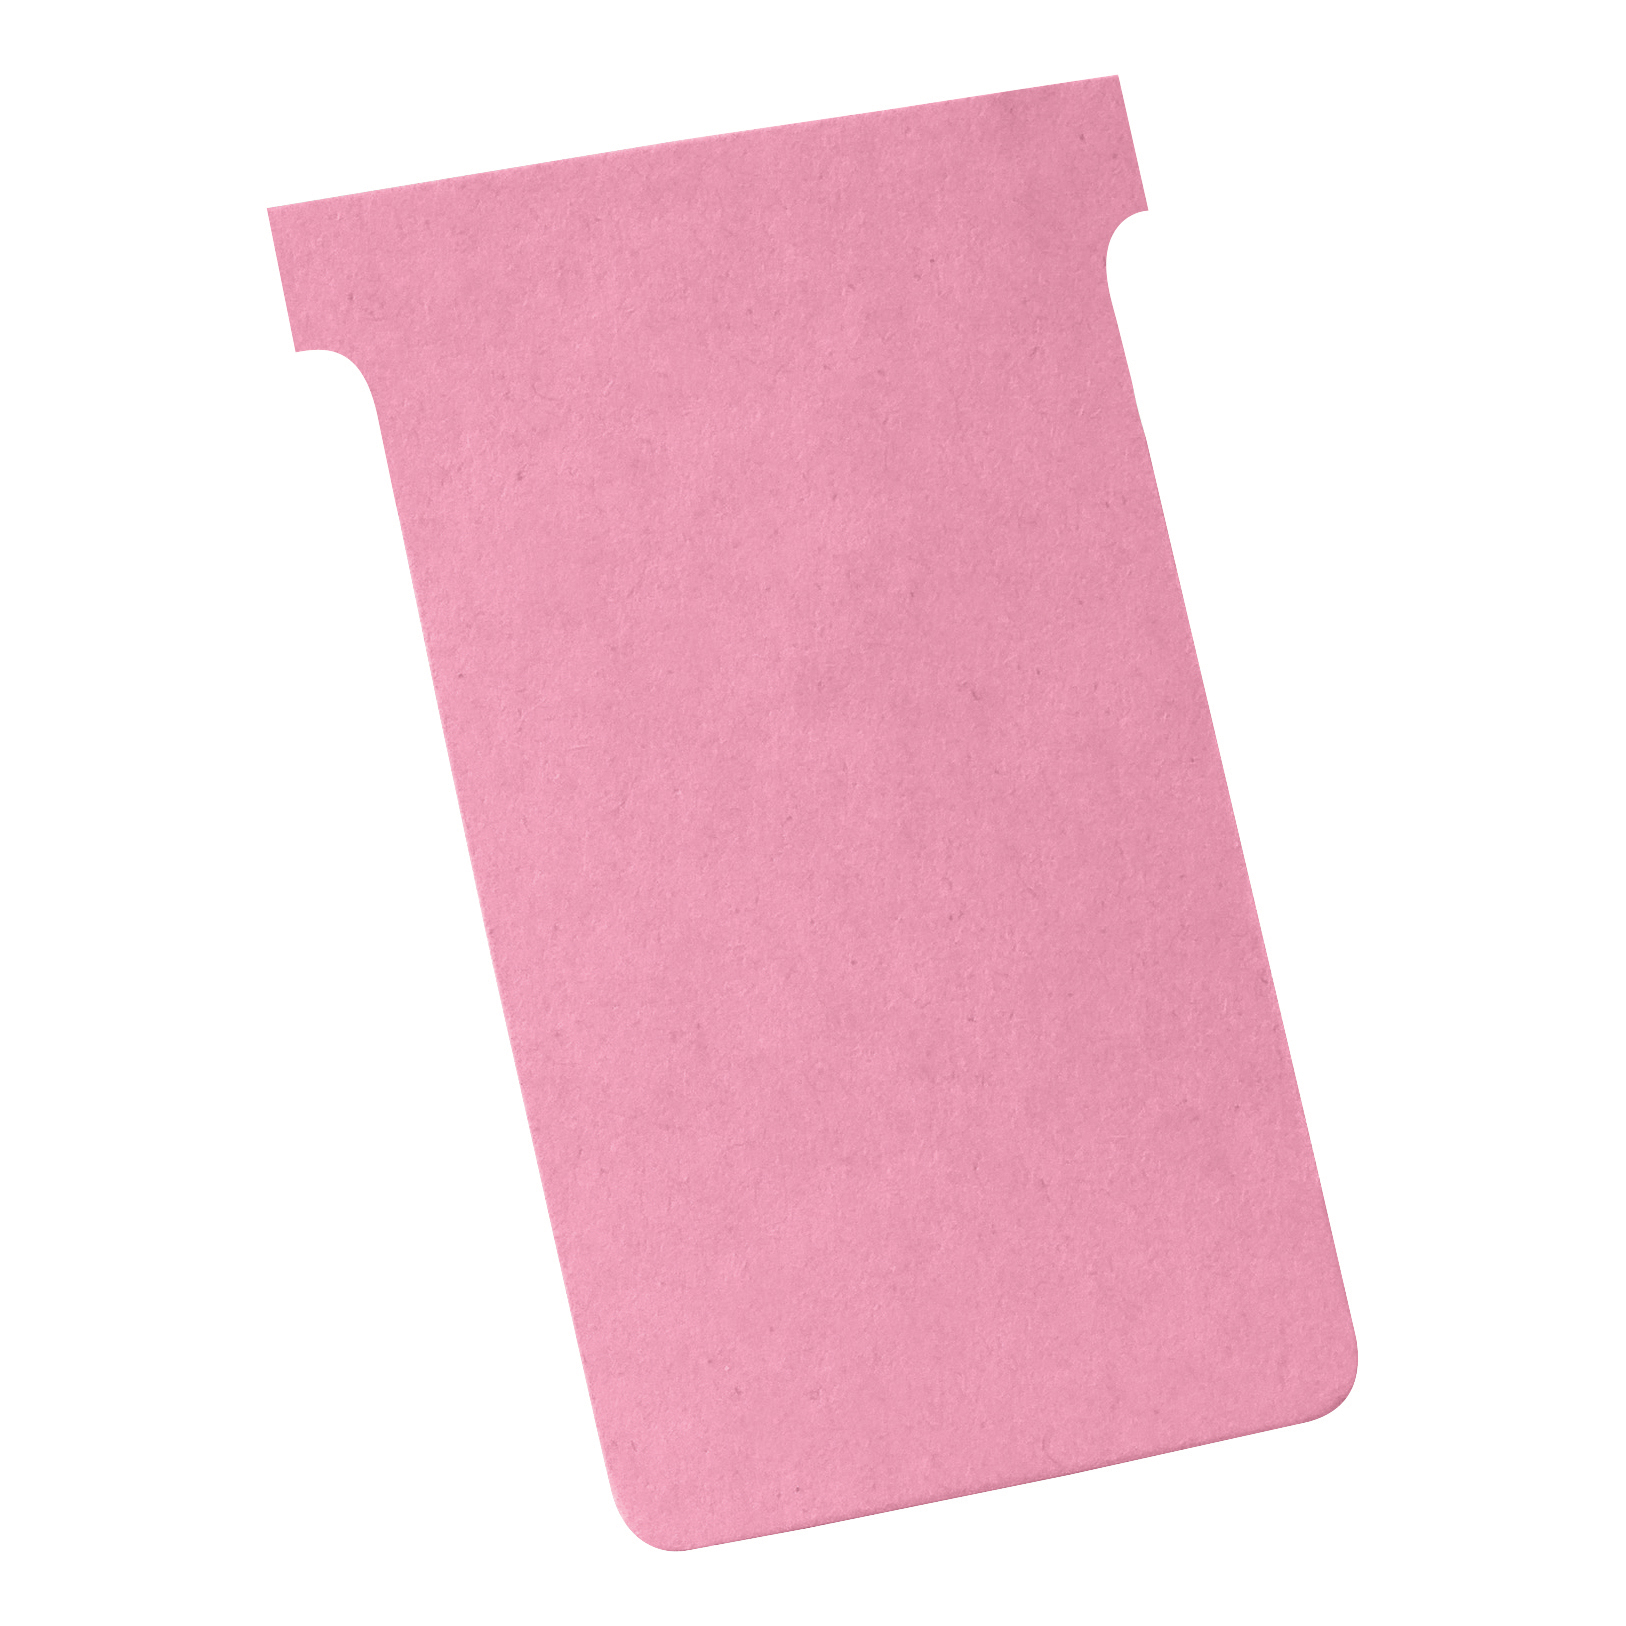 T Cards Nobo T-Cards 160gsm Tab Top 15mm W124x Bottom W112x Full H180mm Size 4 Pink Ref 2004008 Pack 100